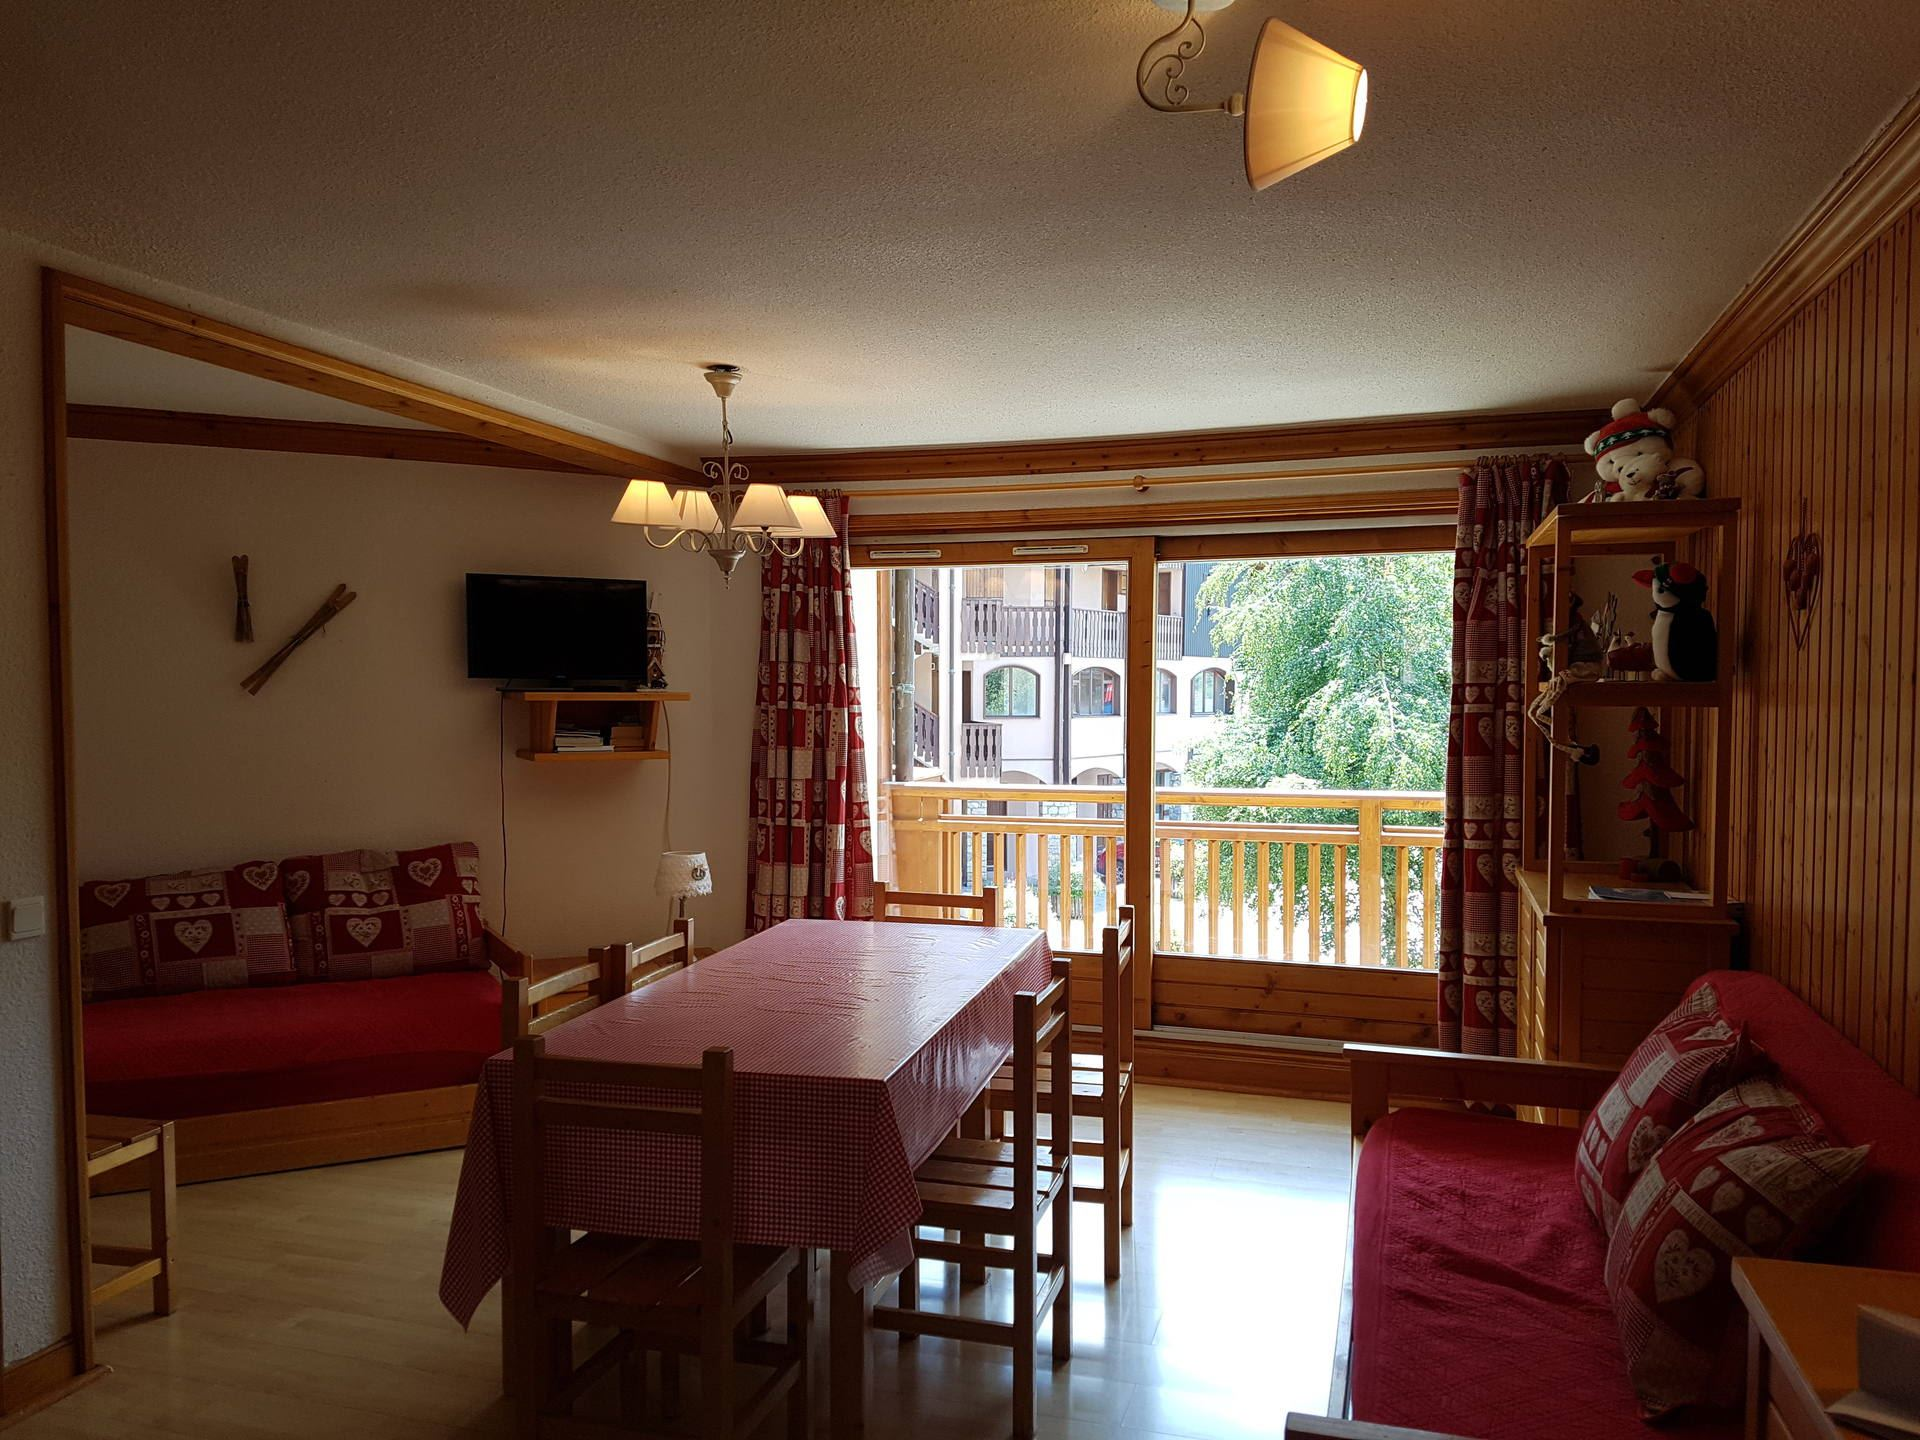 3 Rooms 6 Pers ski-in ski-out / BALCONS DE TOUGNETTE 10